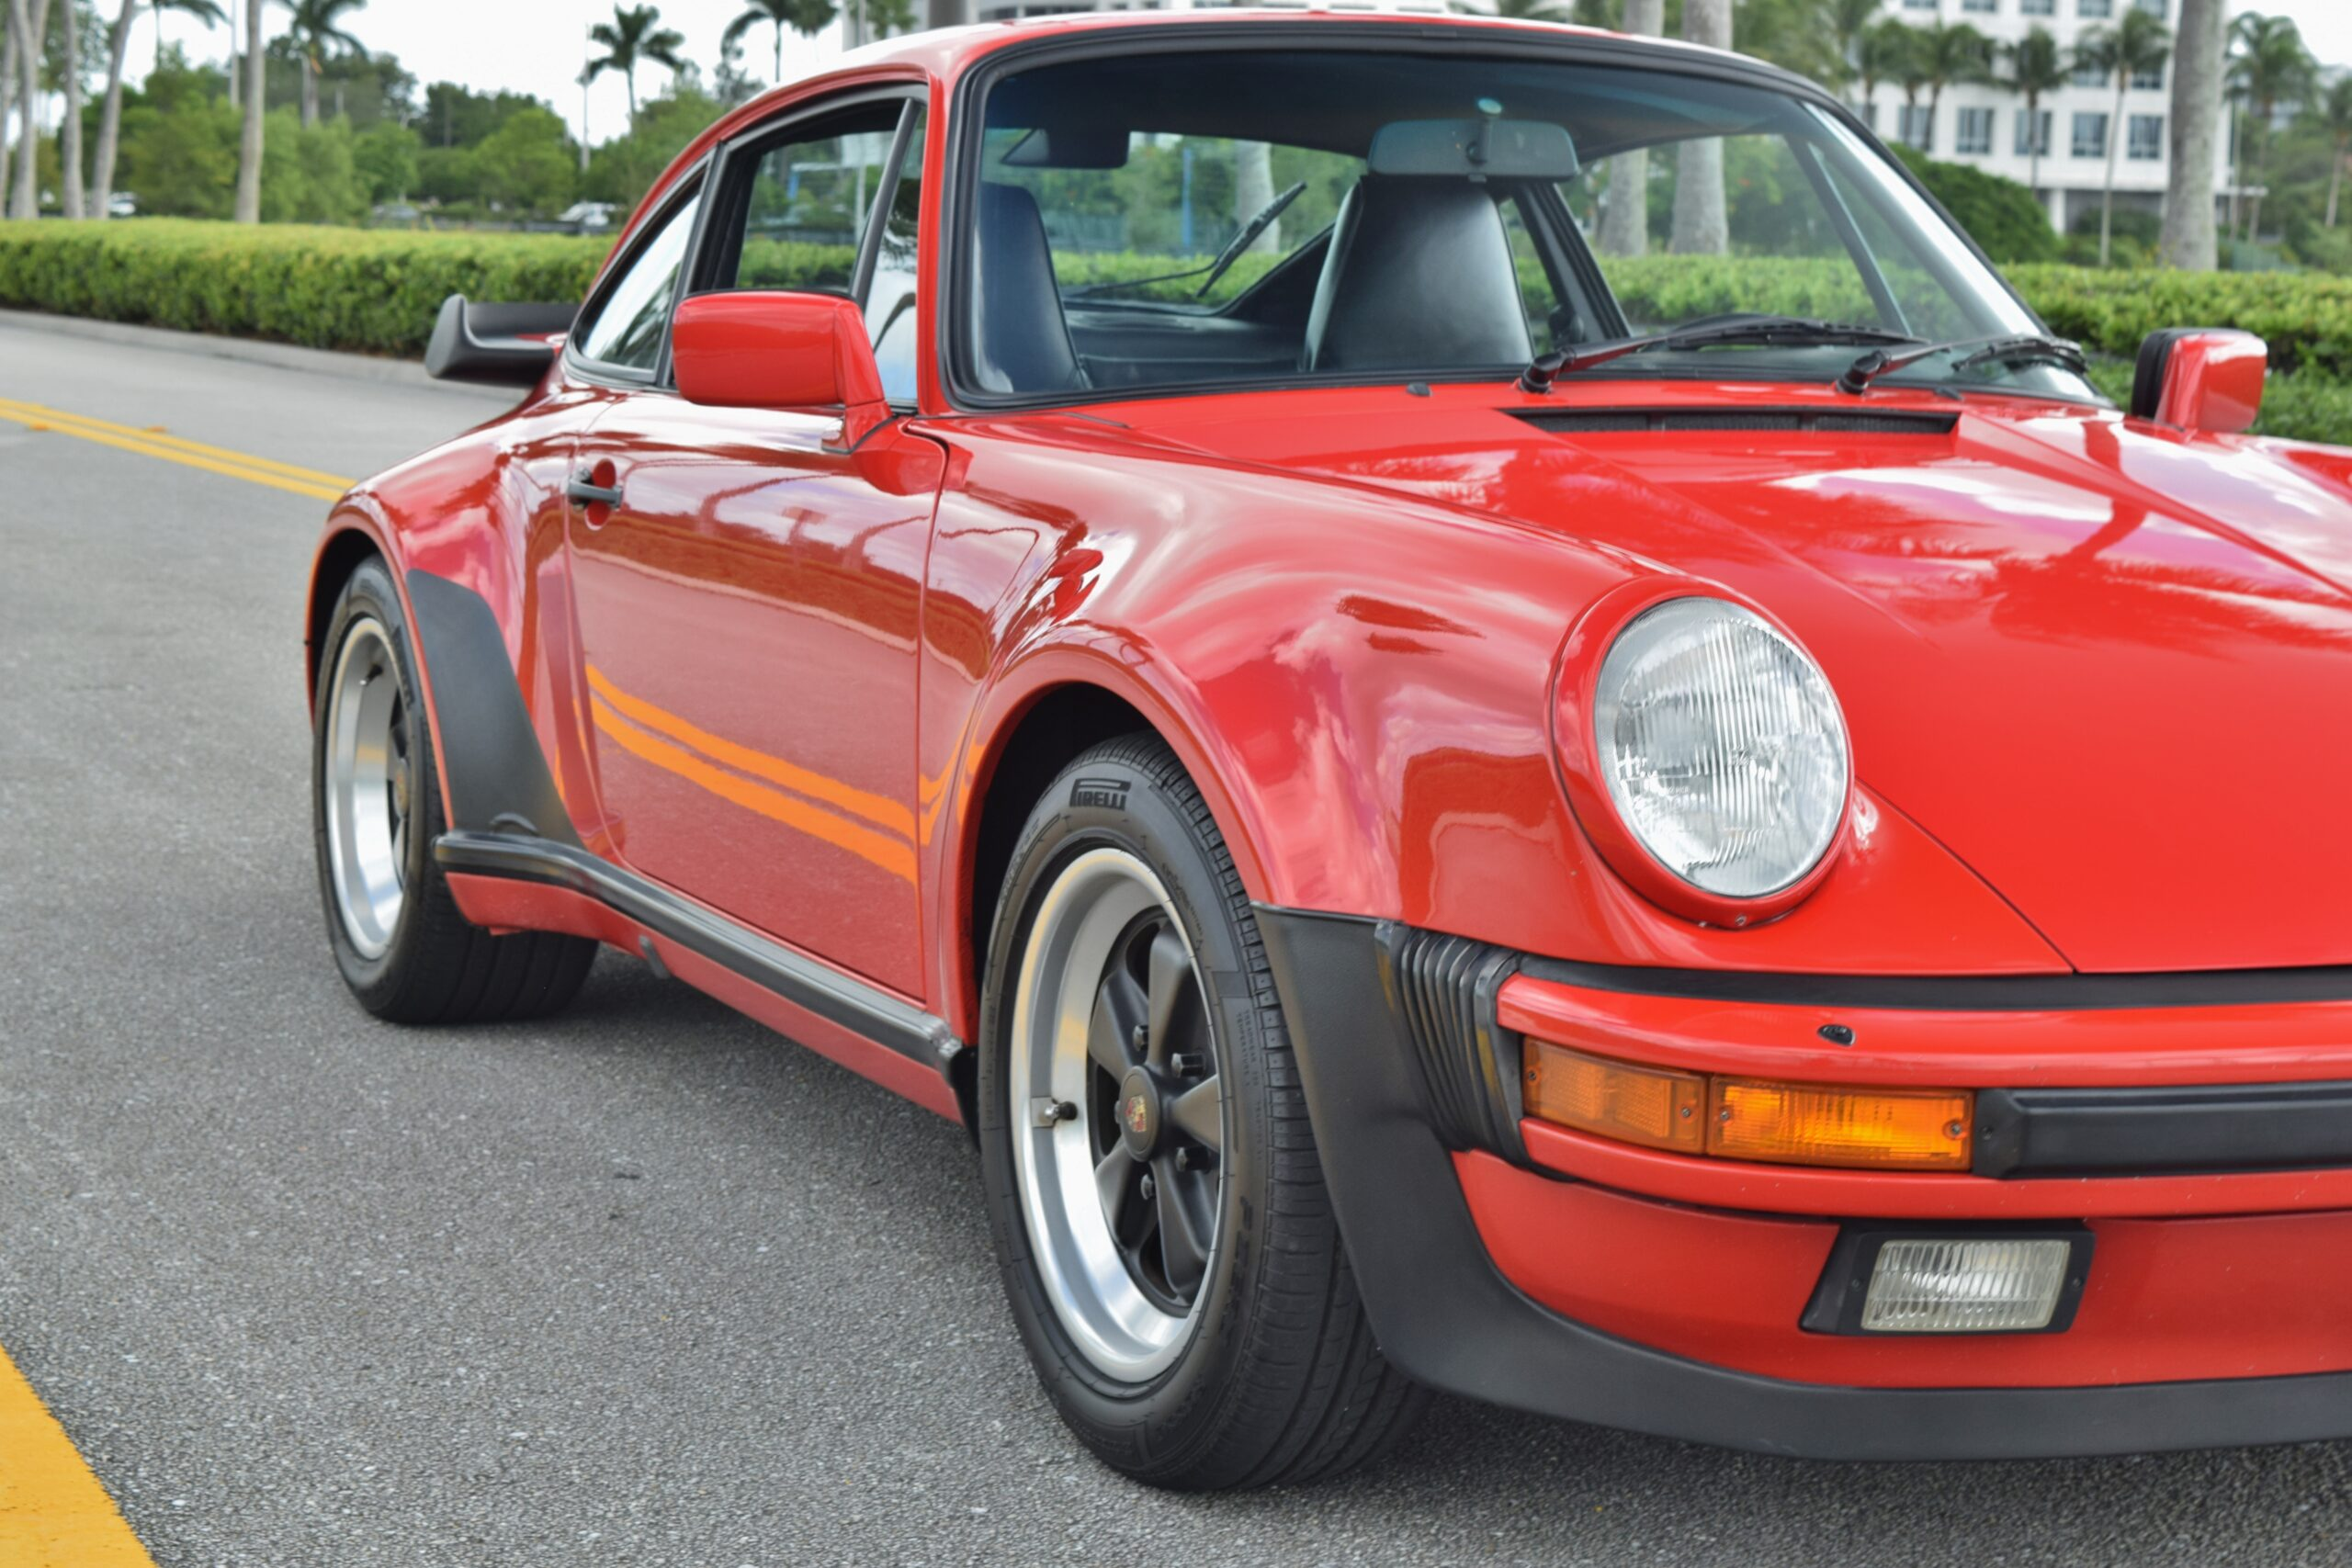 1986 Porsche 911 Turbo 930 Only 51K Miles-Matching Numbers-100% Stock-Engine reseal Porsche Service History